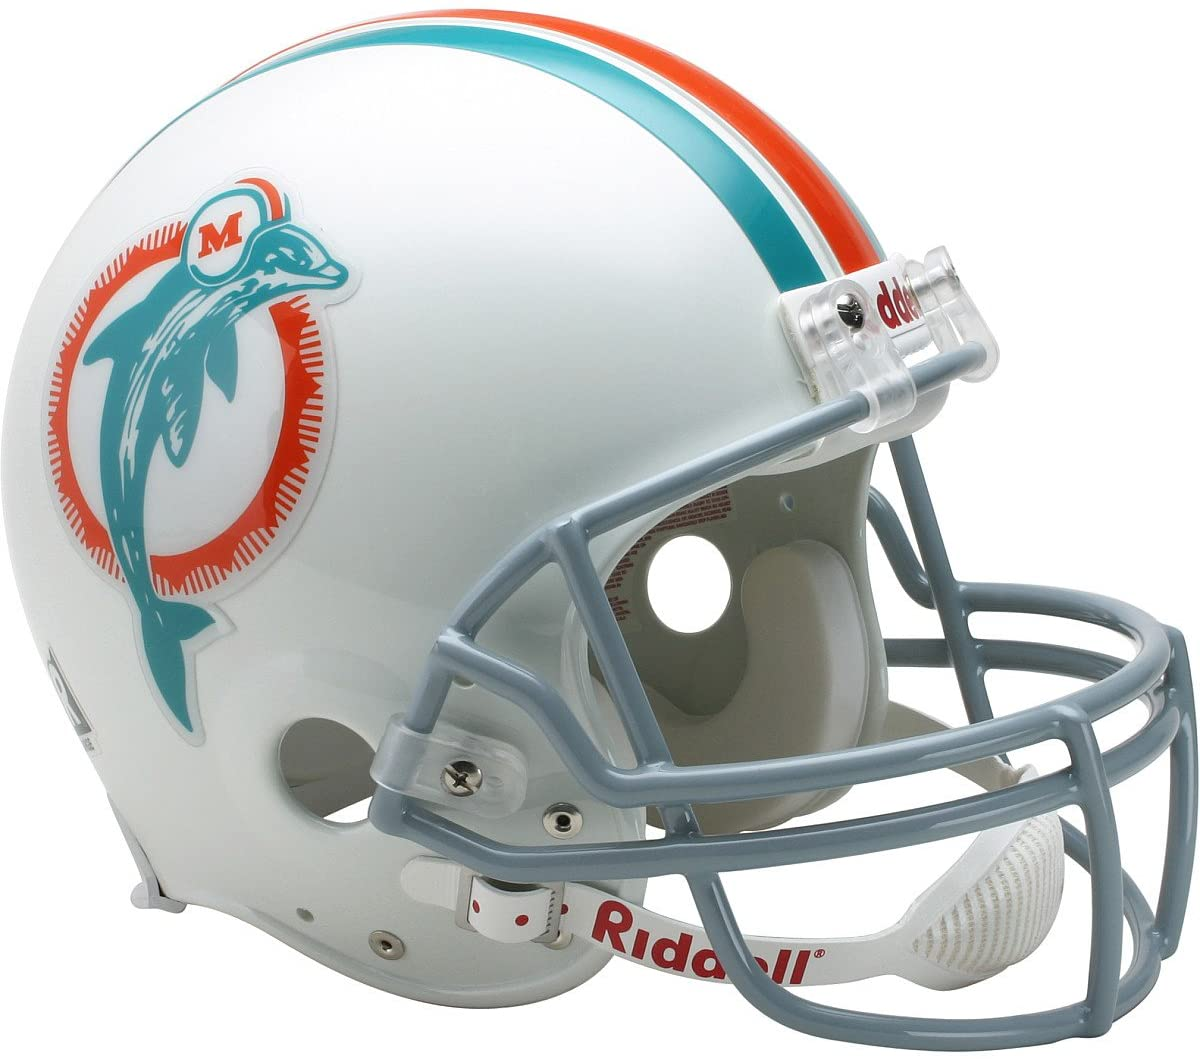 Riddell Miami Dolphins 1973-1979 Authentic Throwback Helmet